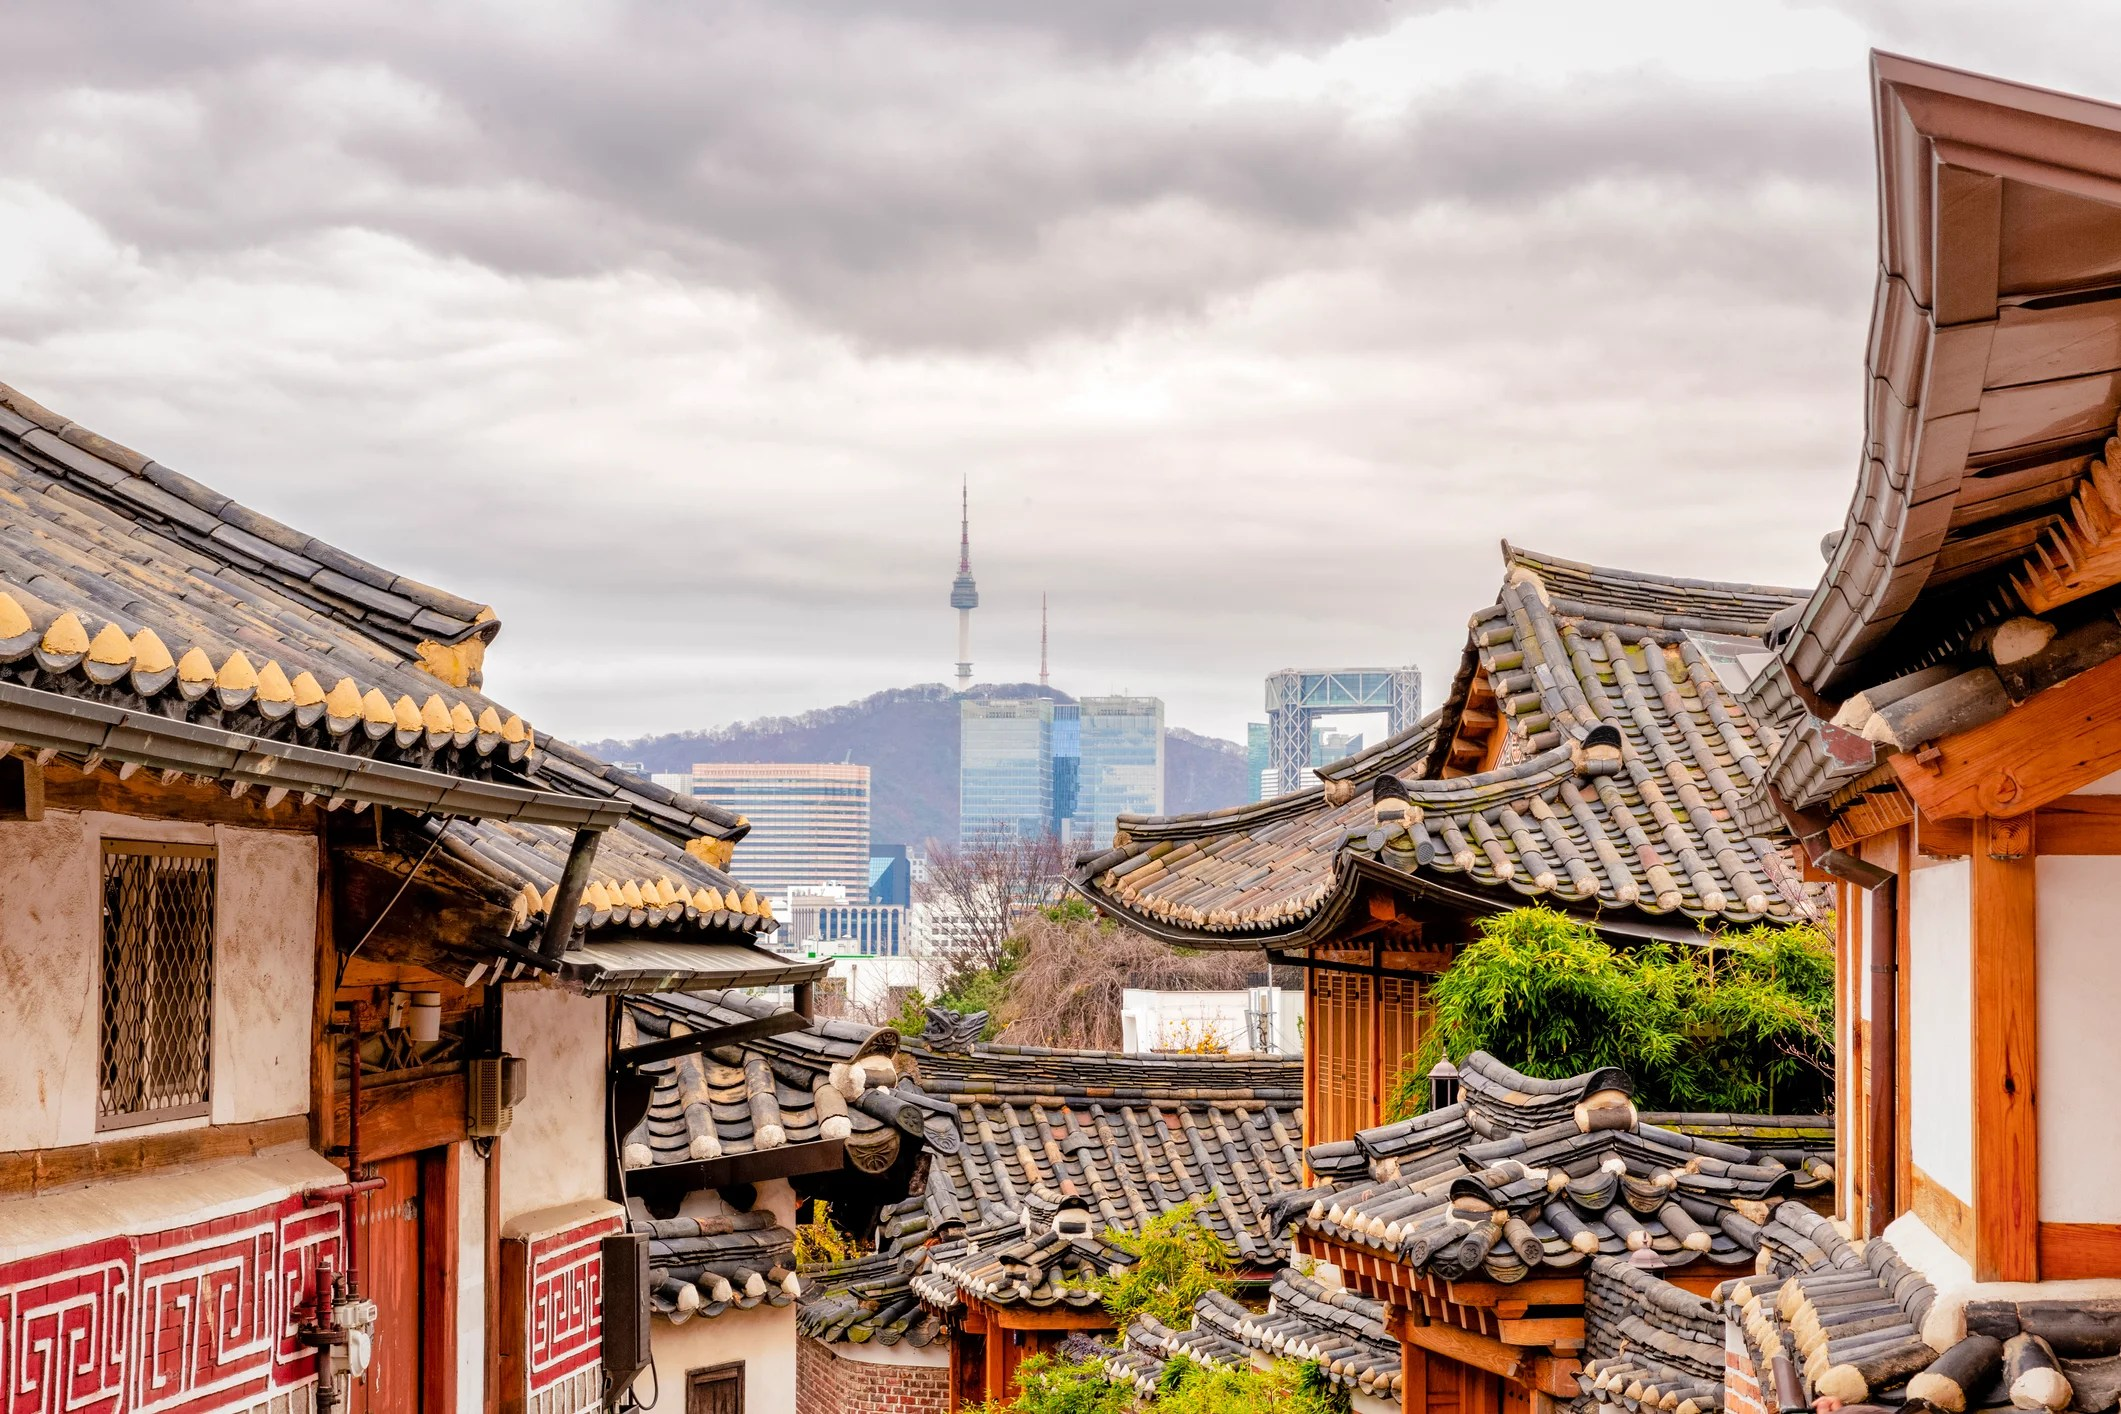 Deal Alert: Flights to Japan, Korea and Thailand From $368 Round-Trip